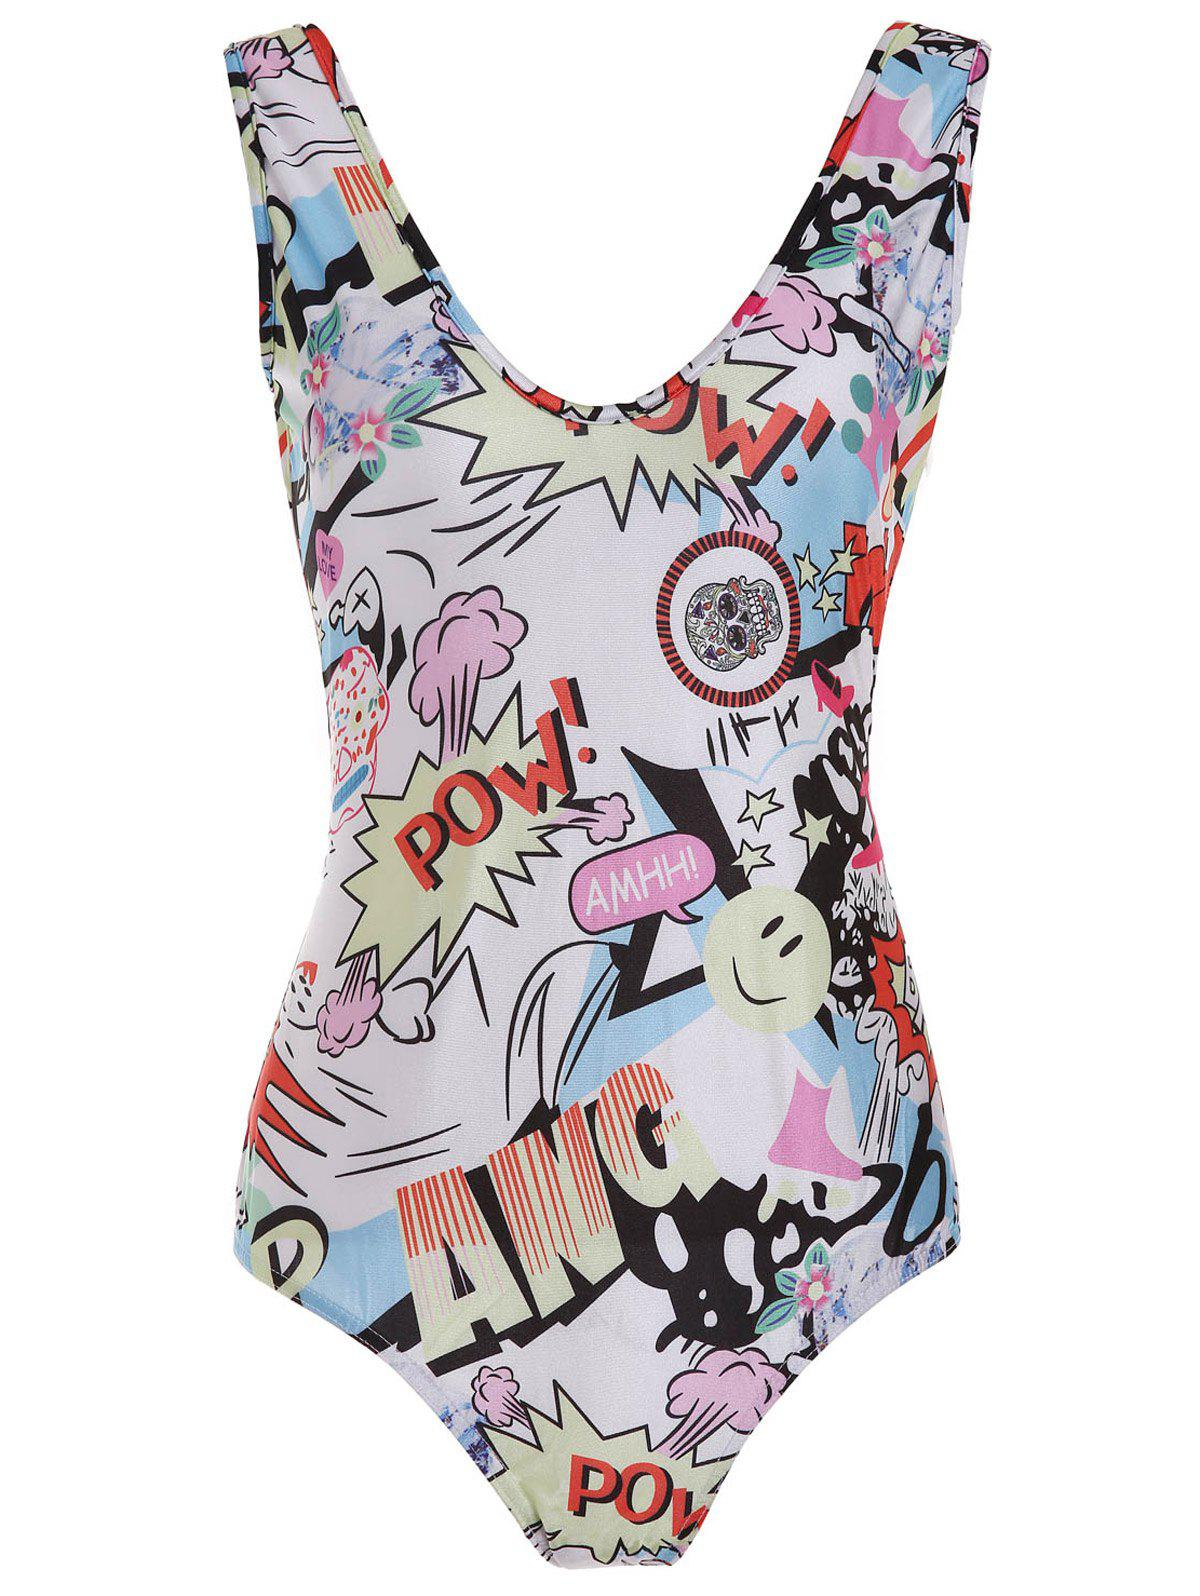 Fashionable Scoop Neck Full Print Slimming Swimsuit For Women - COLORMIX L